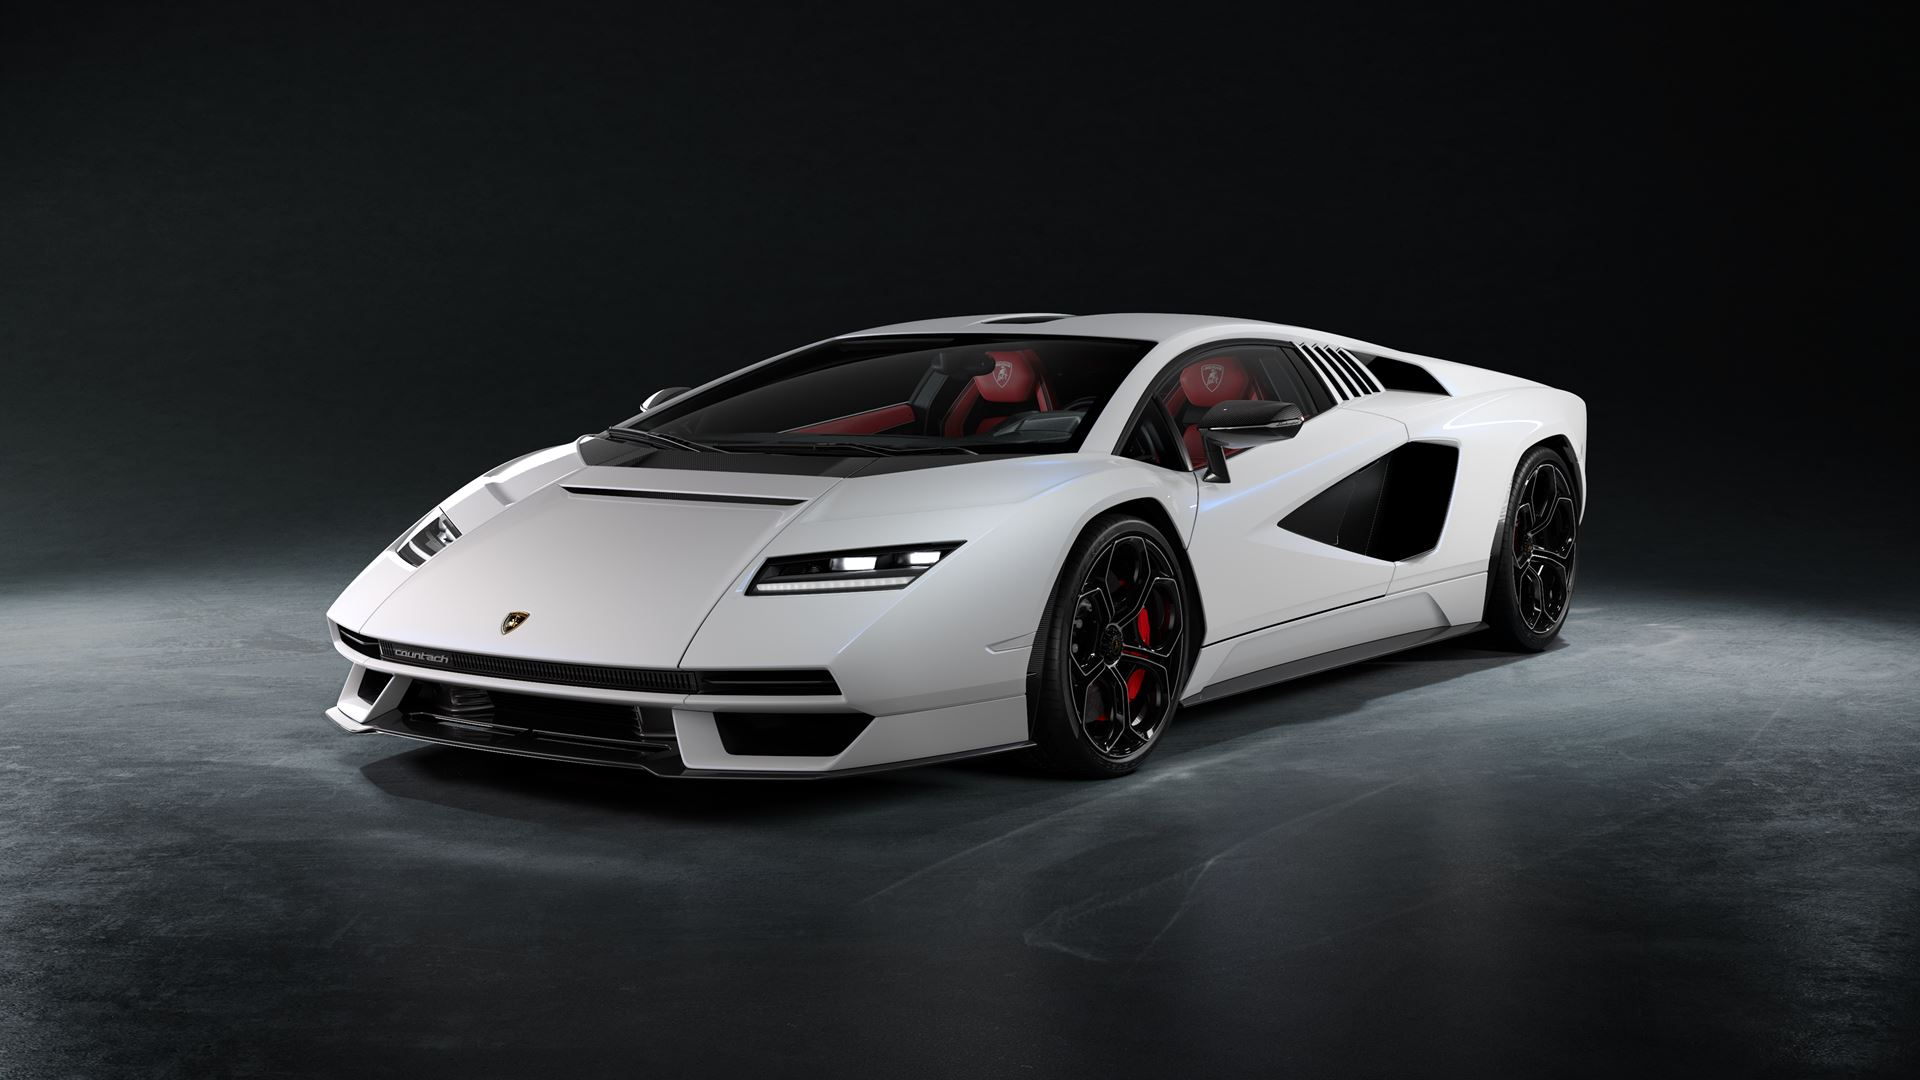 Lamborghini Countach LPI 800-4. A design and technology benchmark for modern super sports cars, reimagined for a new era: Our legacy to the future - Image 5